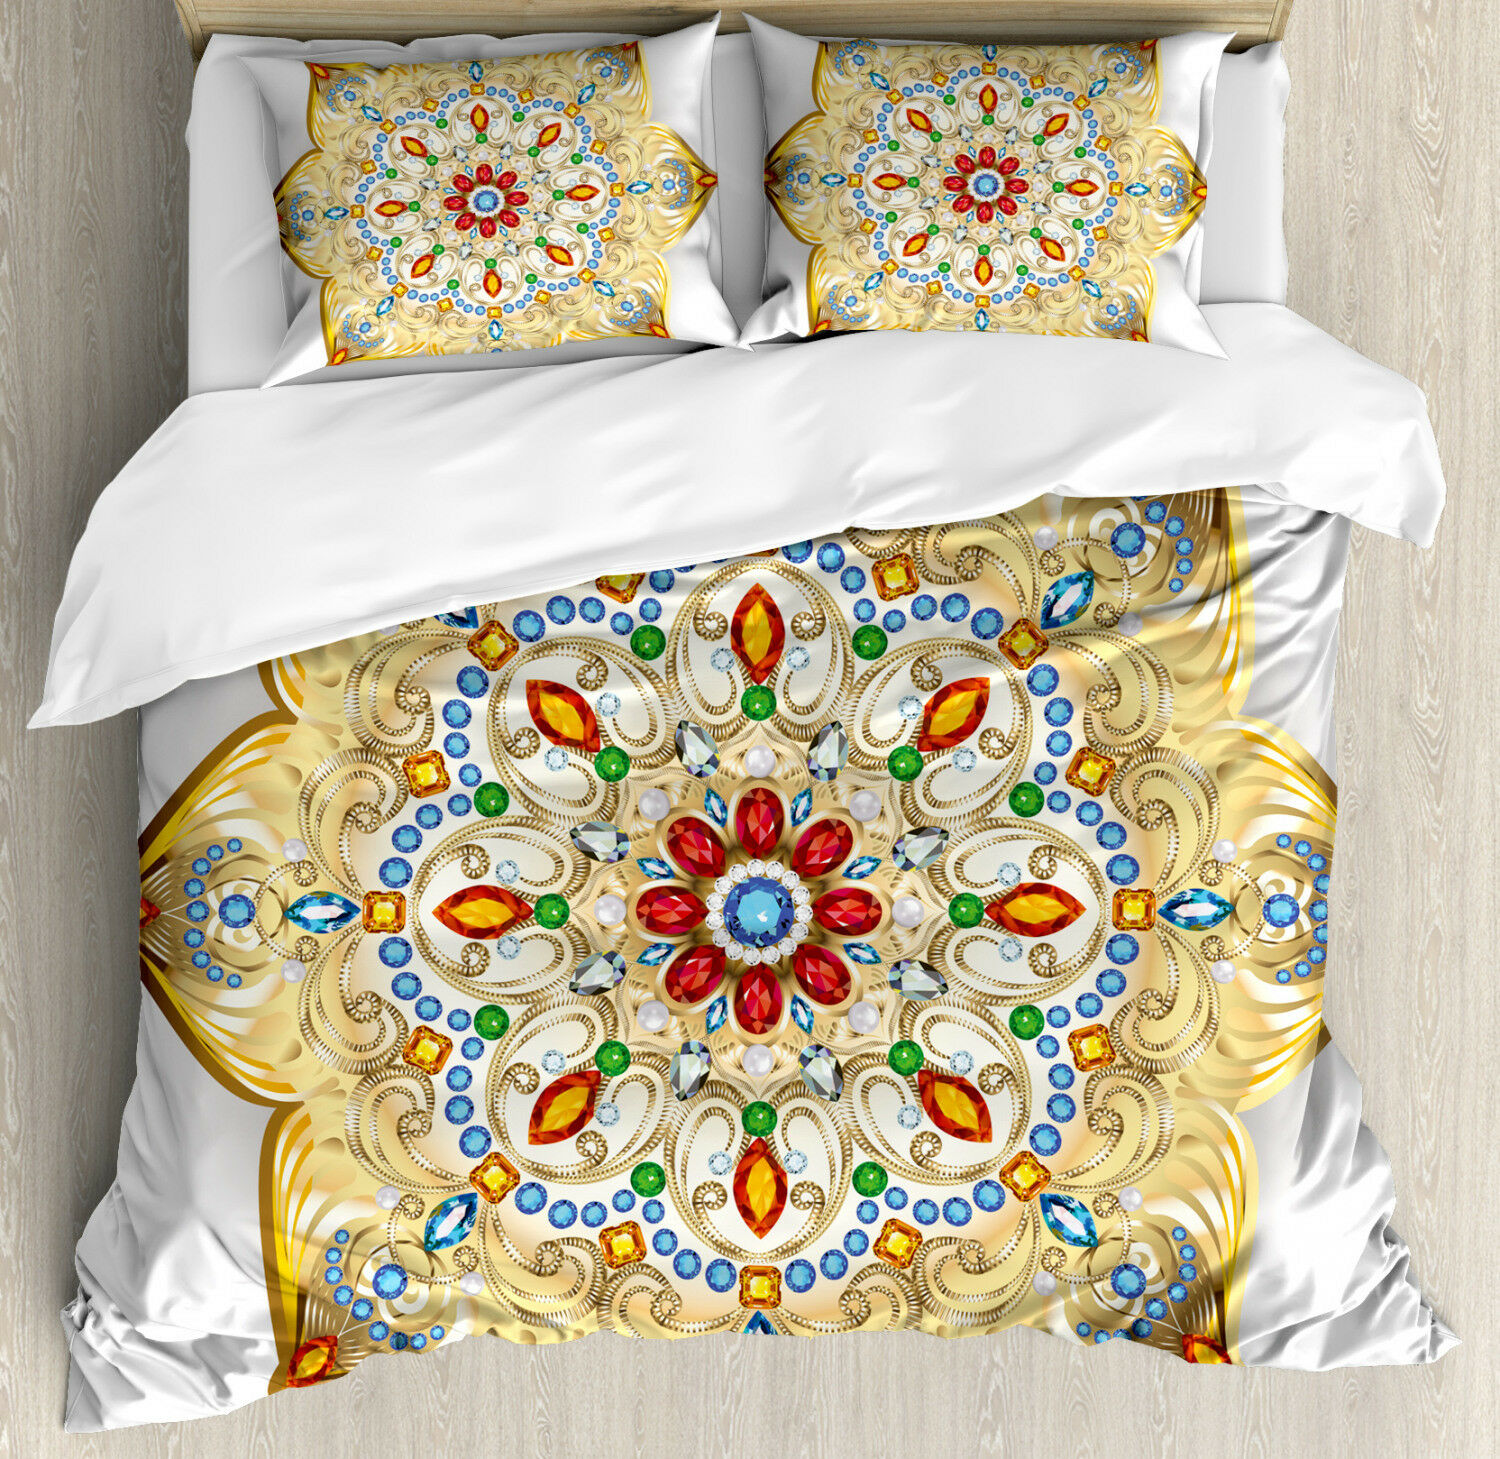 Mandala Duvet Cover Set with Pillow Shams Lively colorful Figure Print